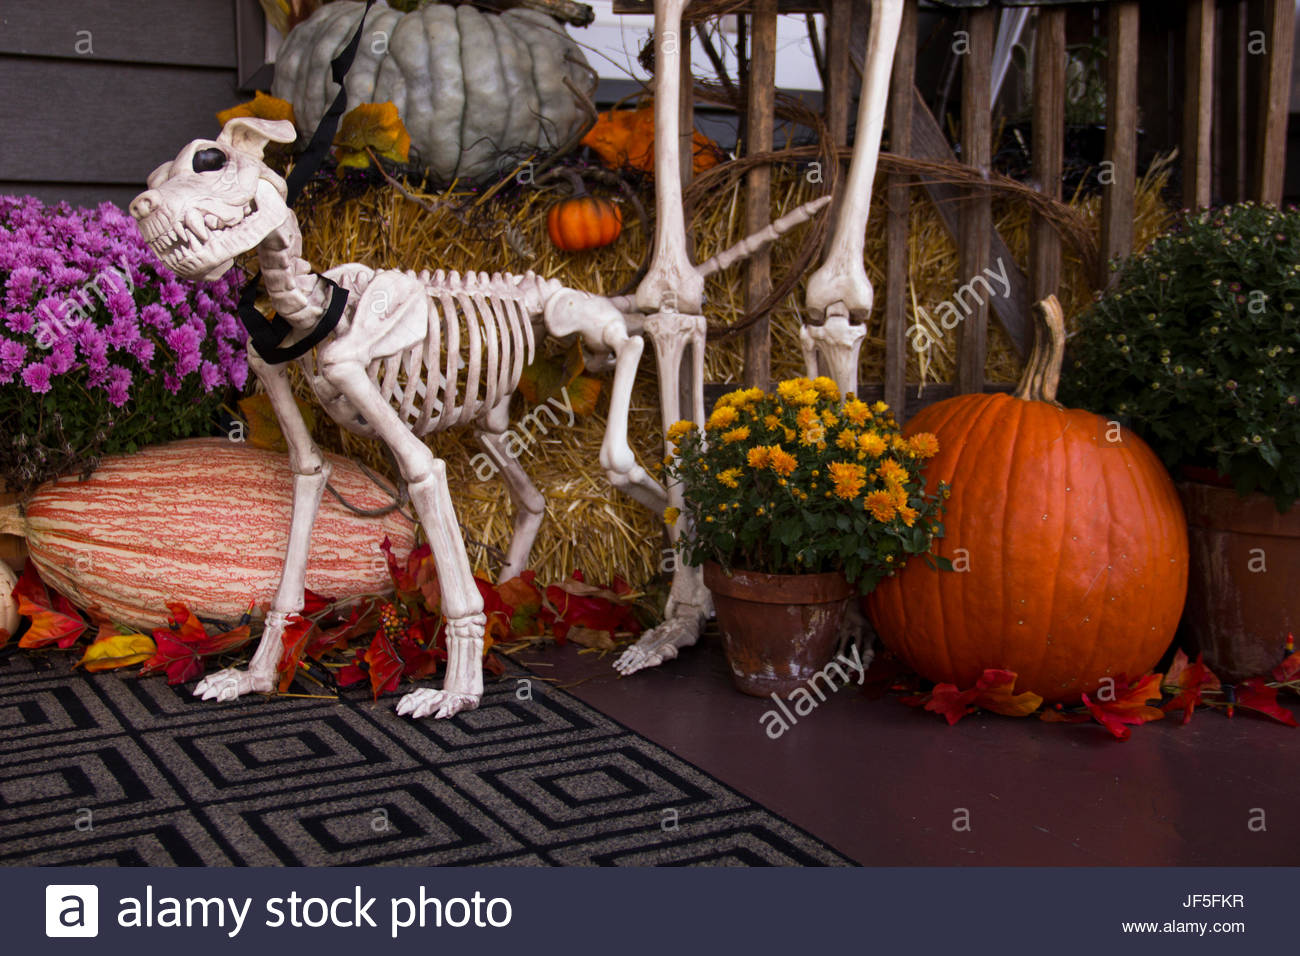 halloween decorations include a hungry-looking dog skeleton stock